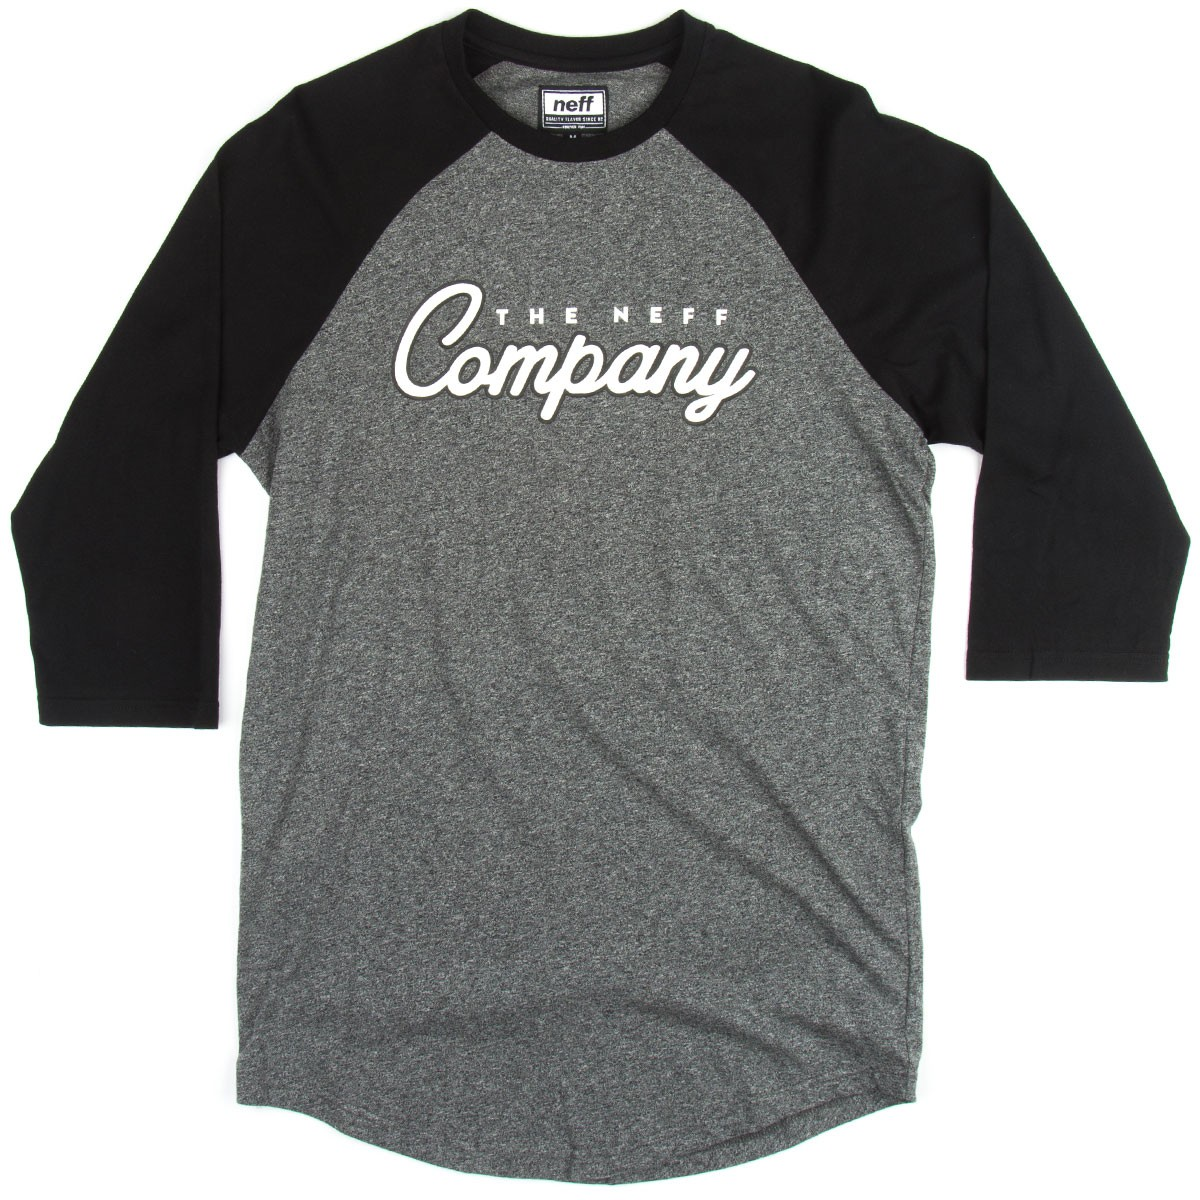 Neff company raglan t shirt charcoal heather for T shirt for company